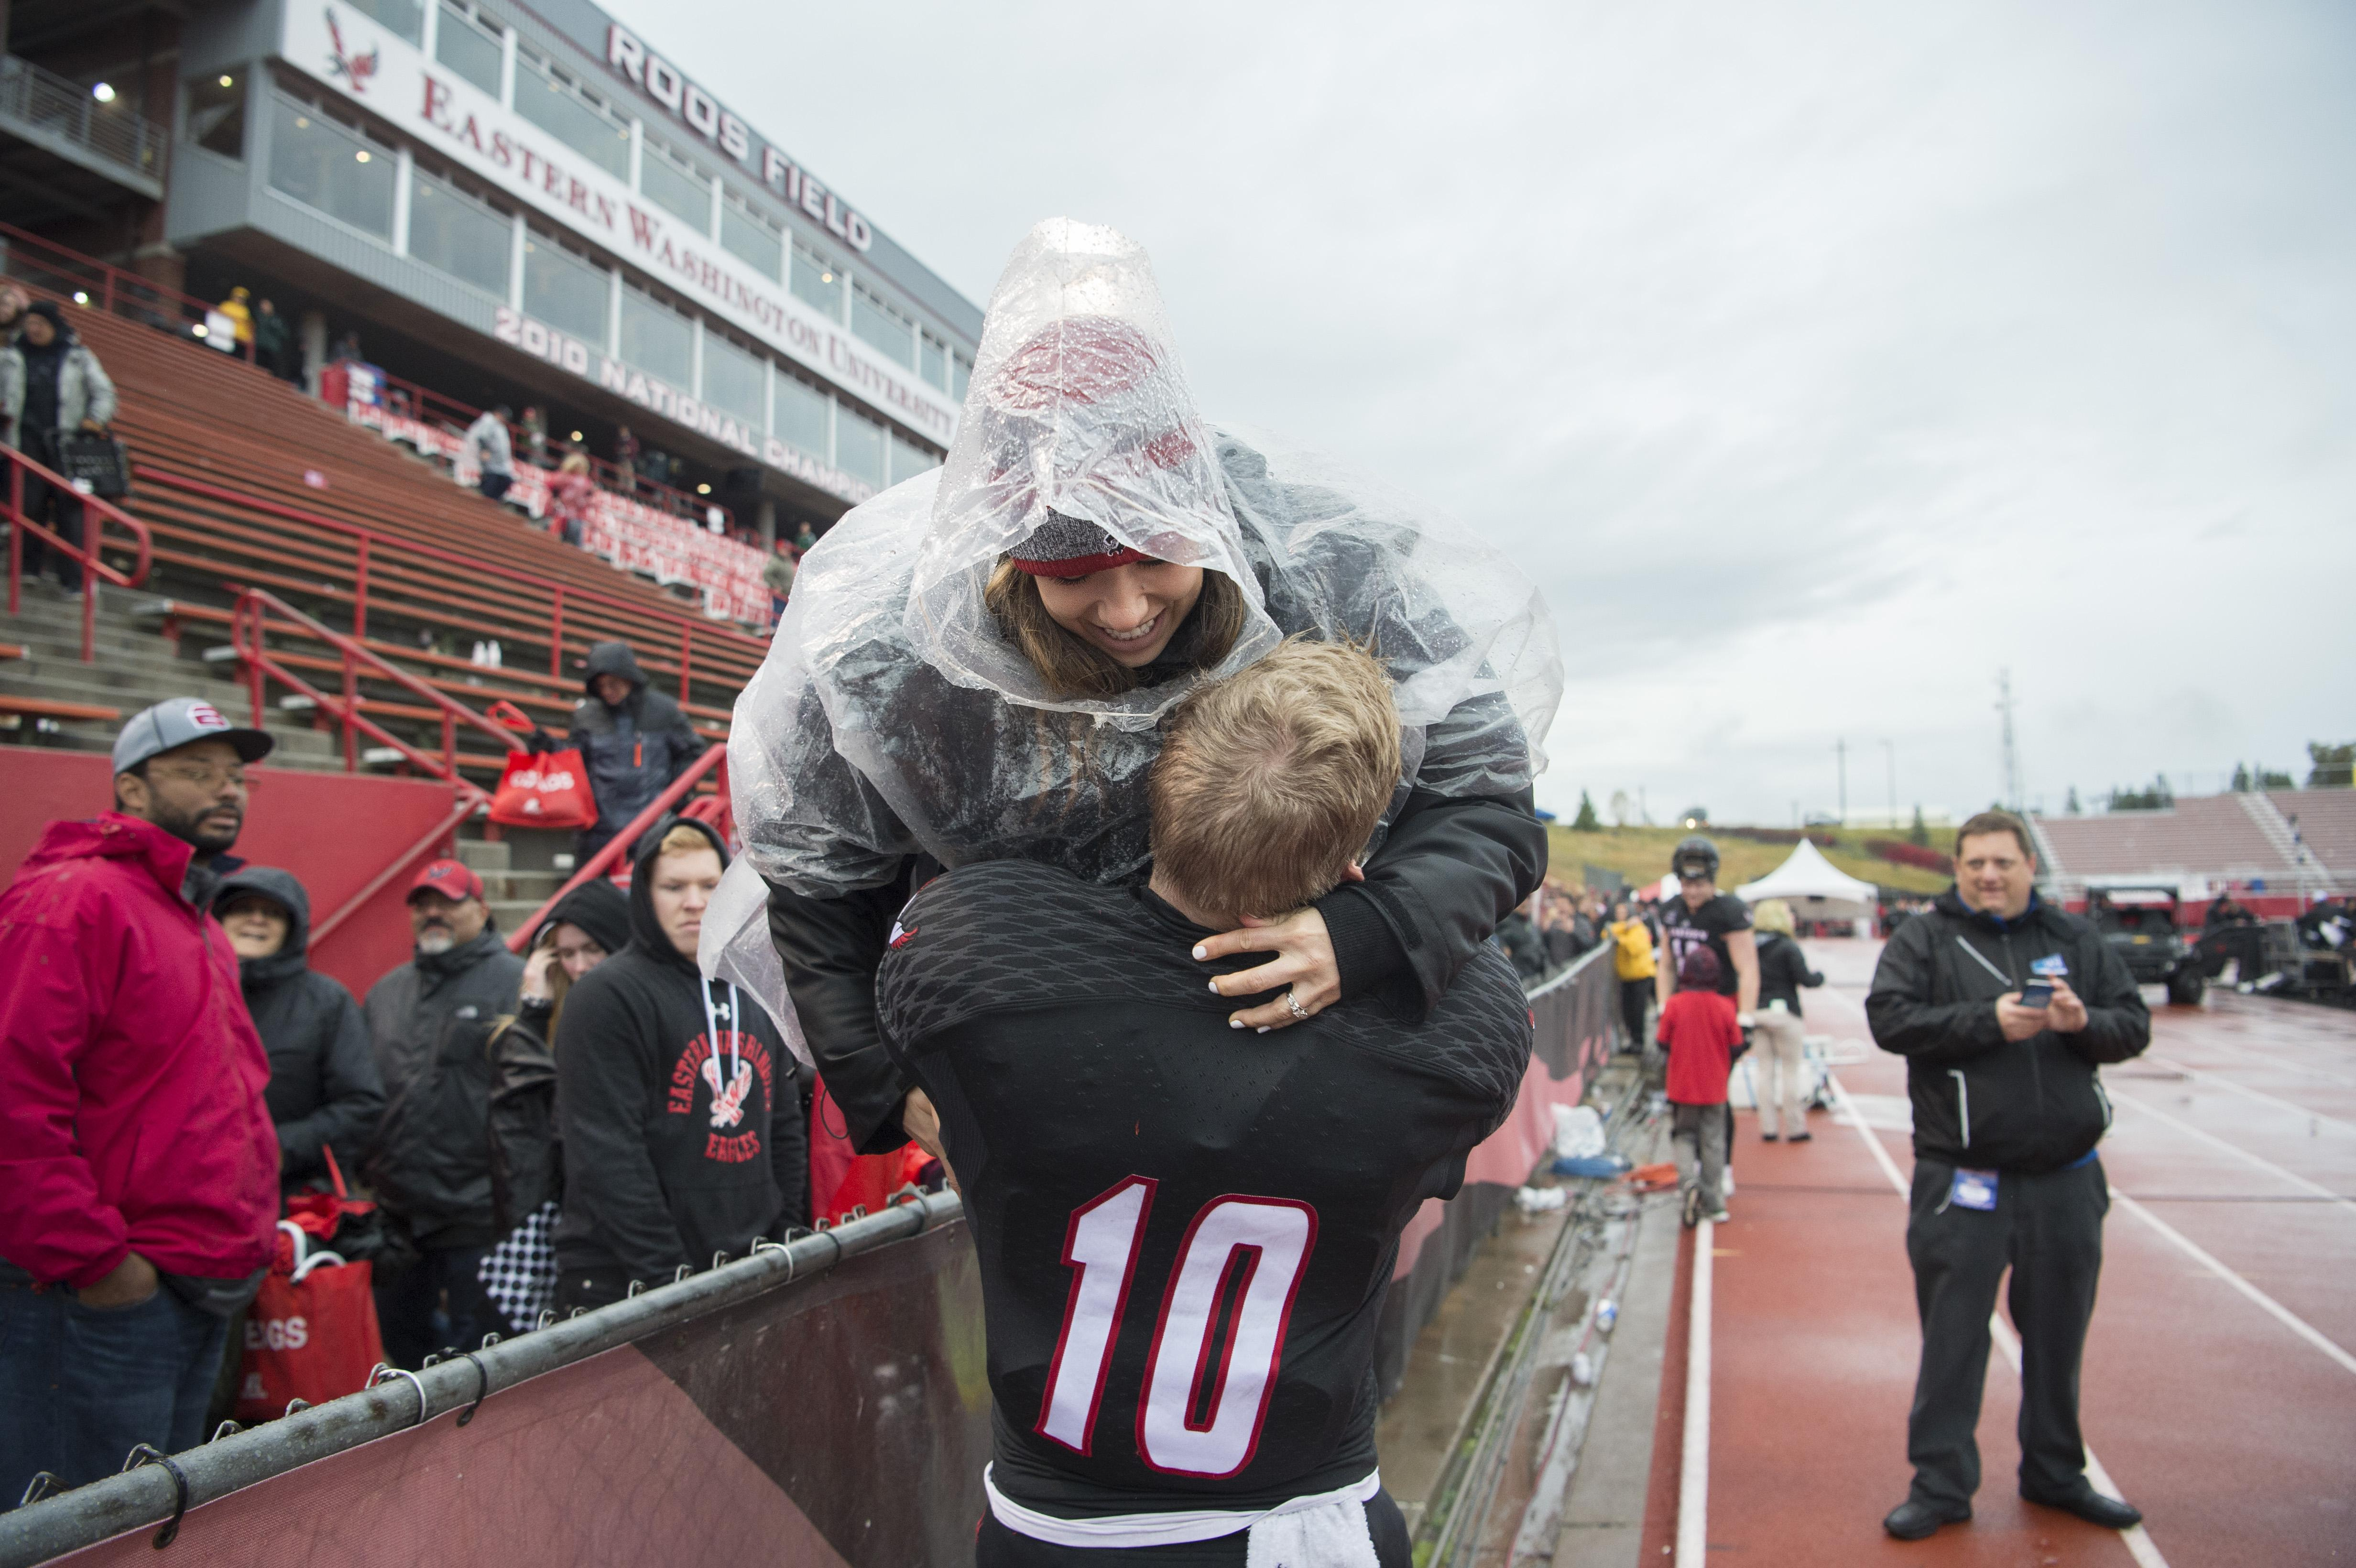 Marriage Faith And Family Ties Strengthen Eagles Wr Cooper Kupp S Ability To Bring People Together The Spokesman Review